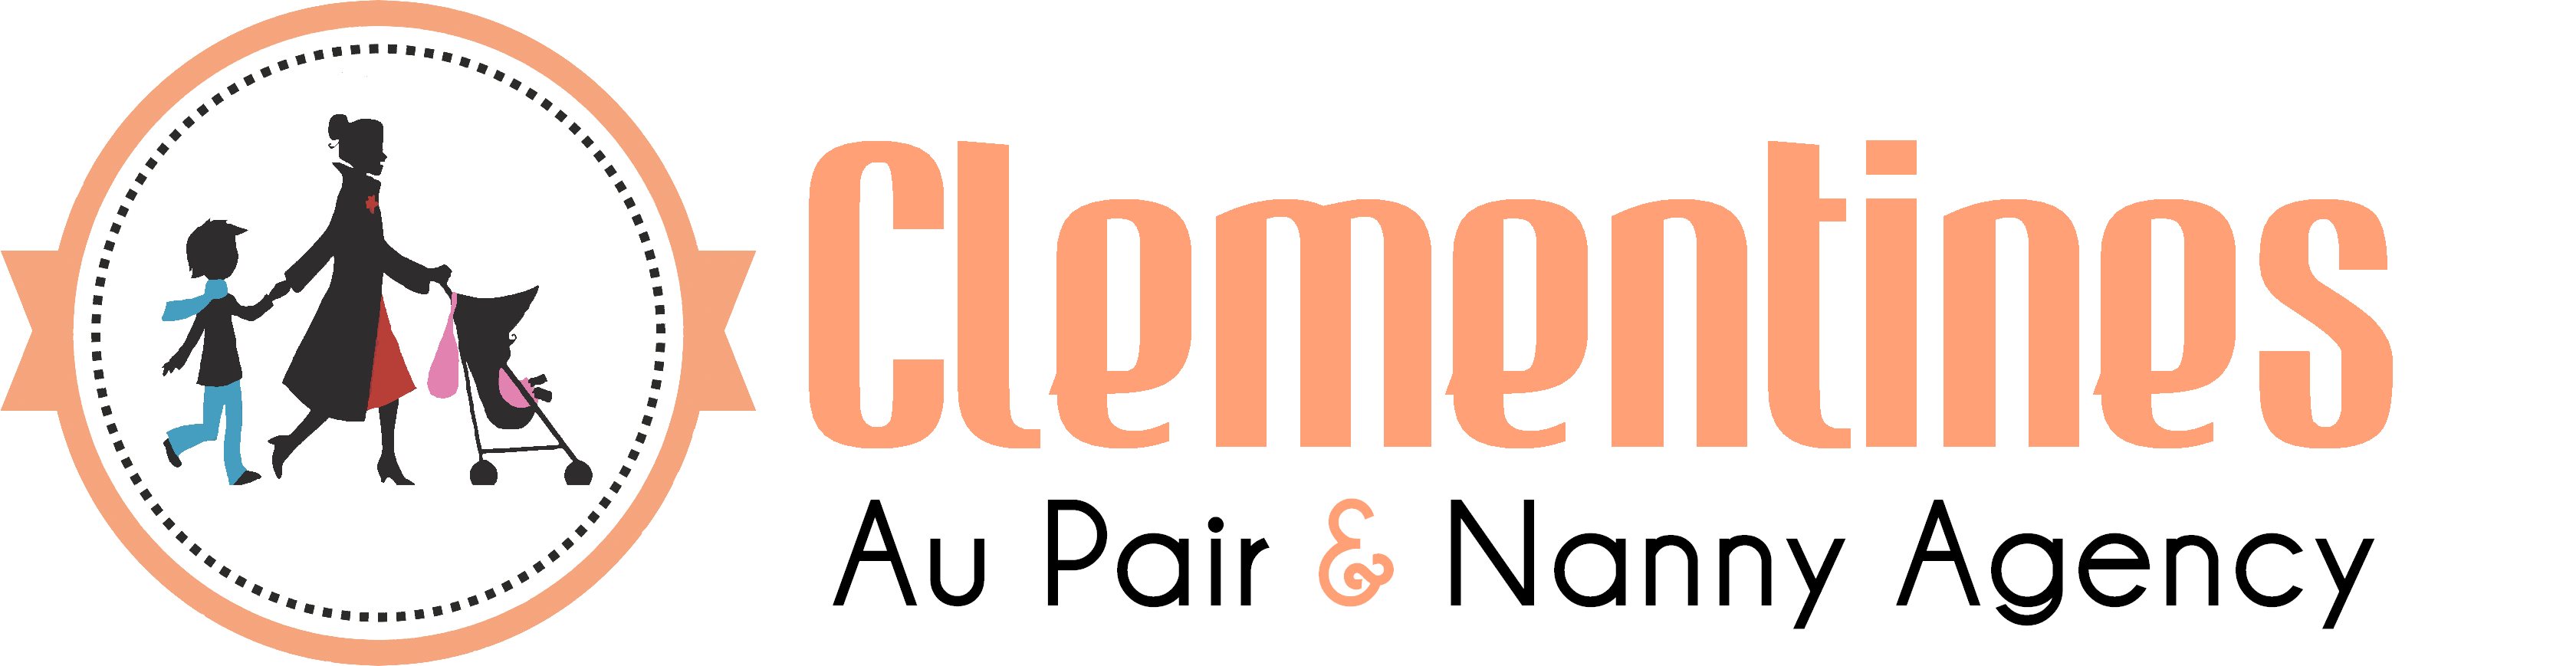 Clementines Au Pairs and Nannies Training